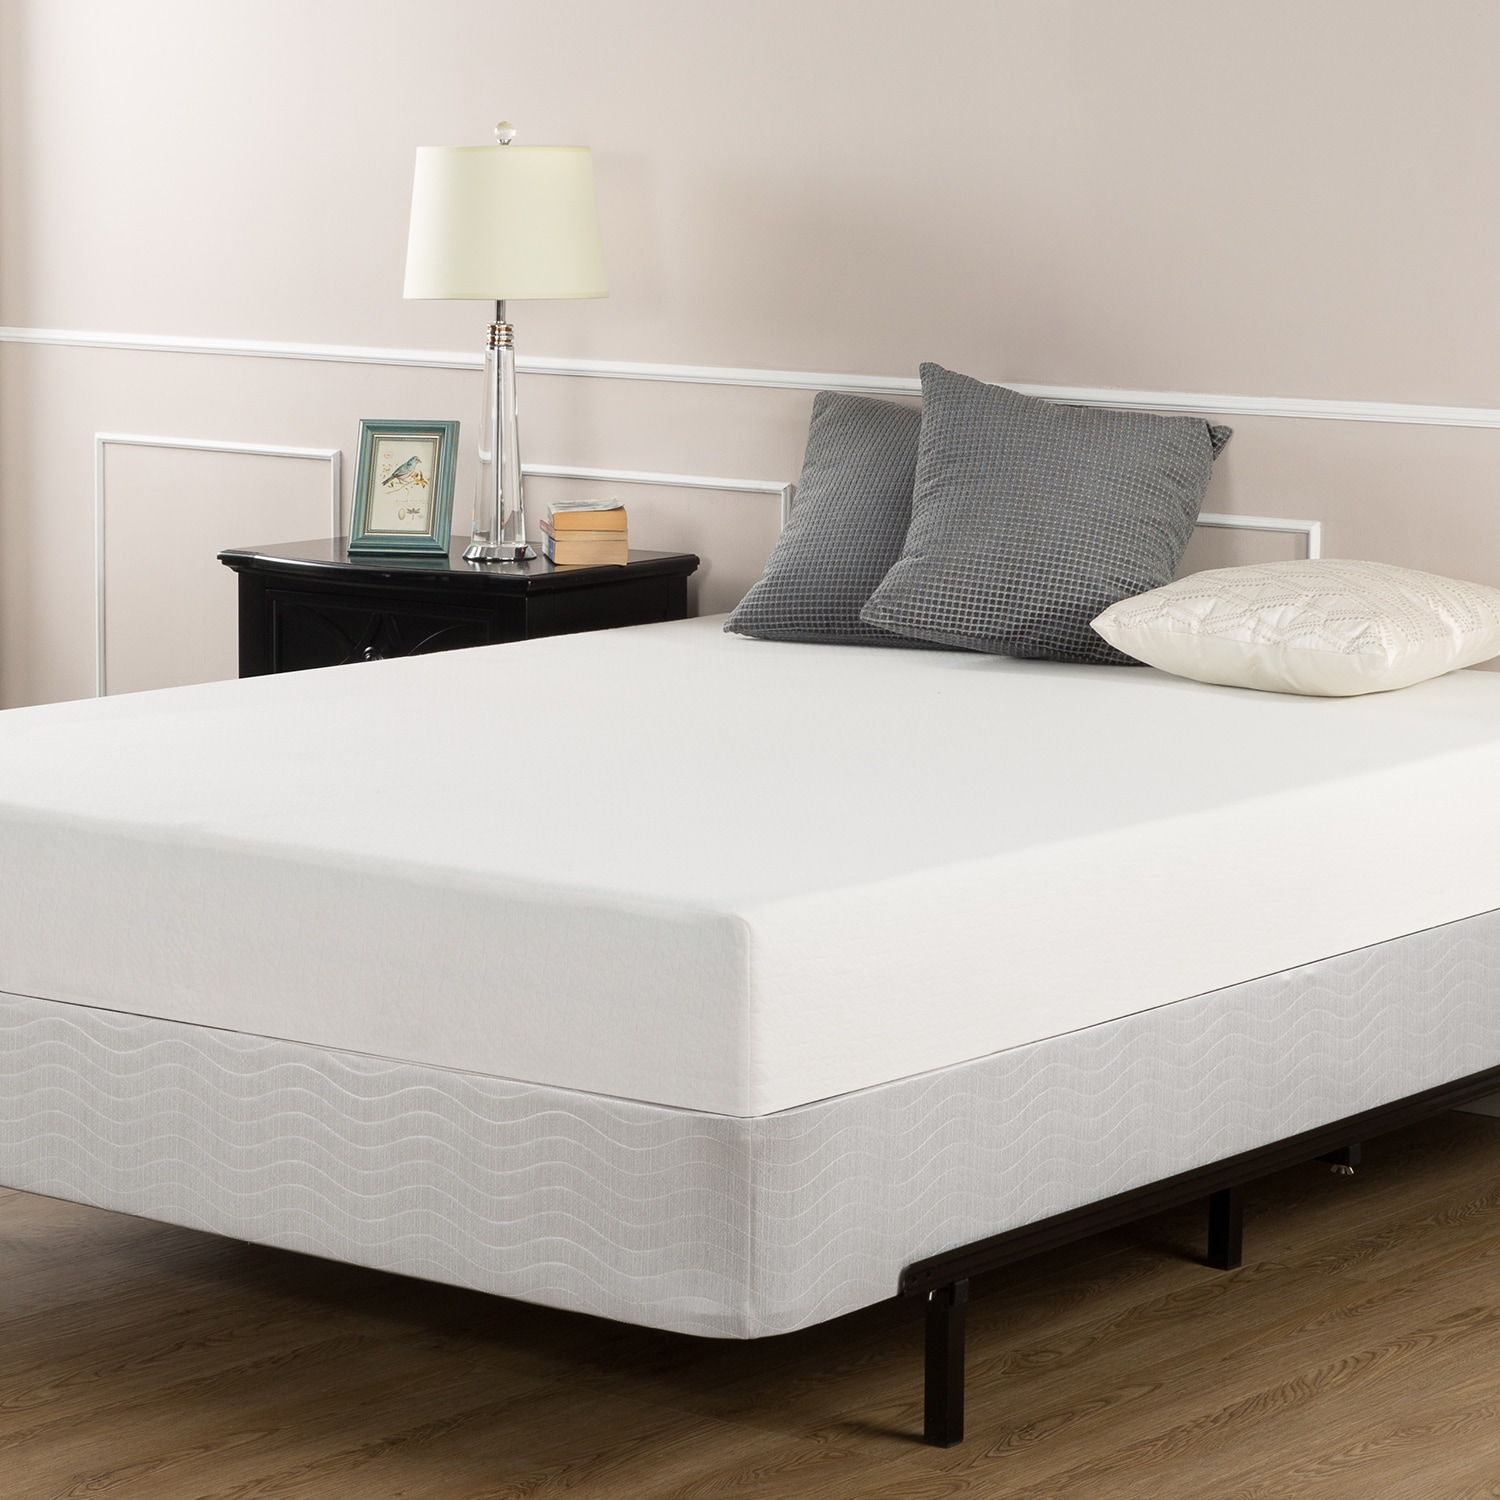 Priage 6-inch Twin-Size Memory Foam Mattress and Box Spri...